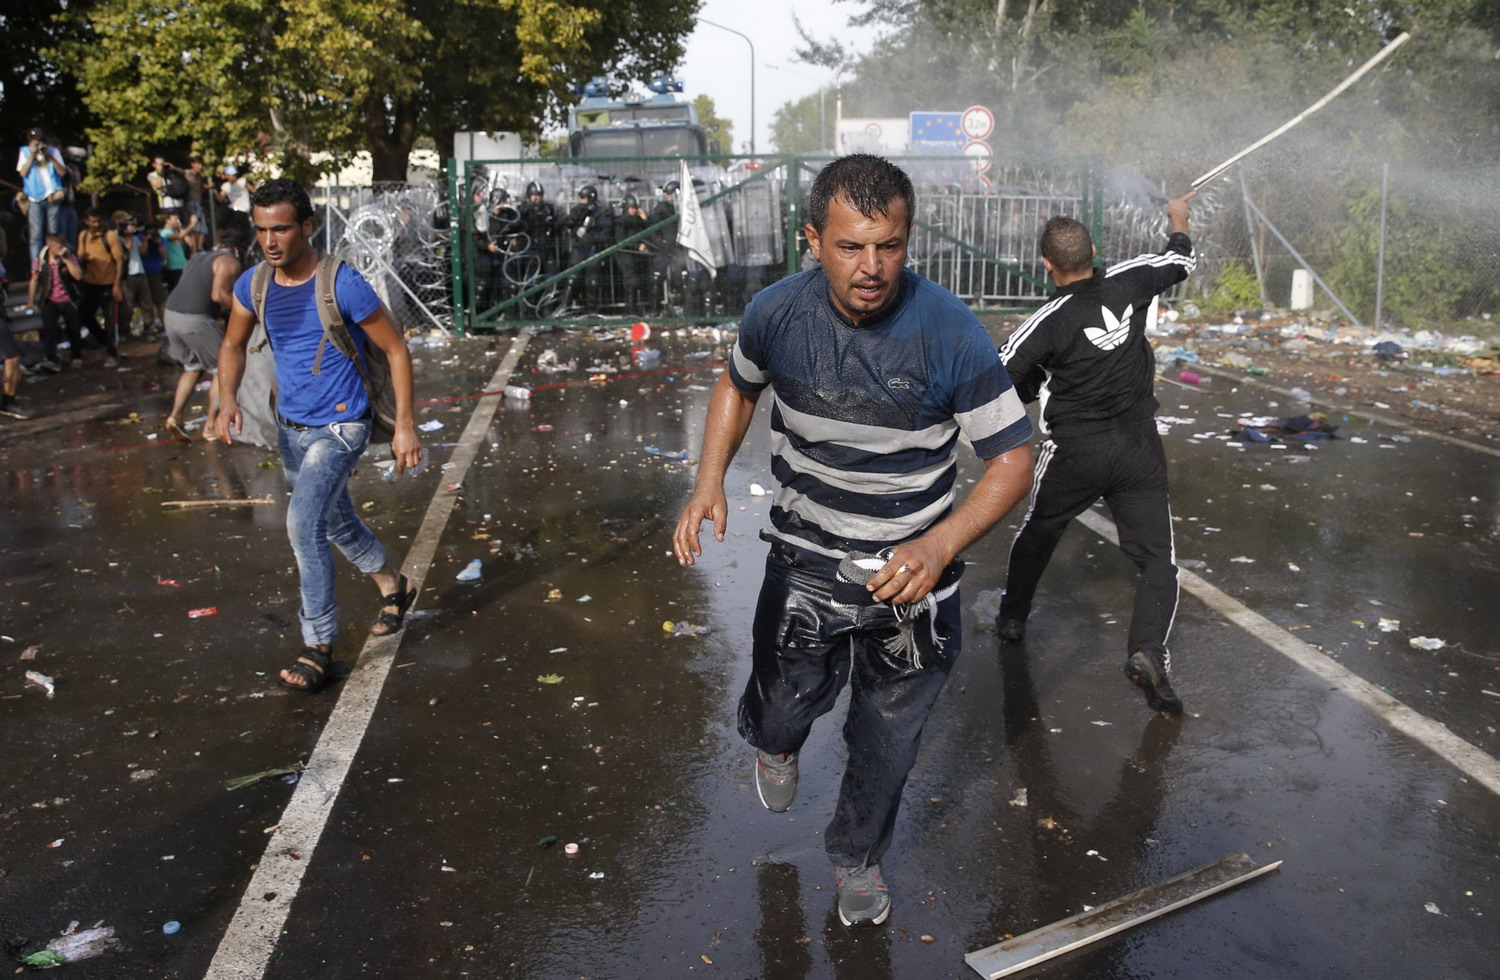 Migrants seek new ways to EU after Hungary shuts main route